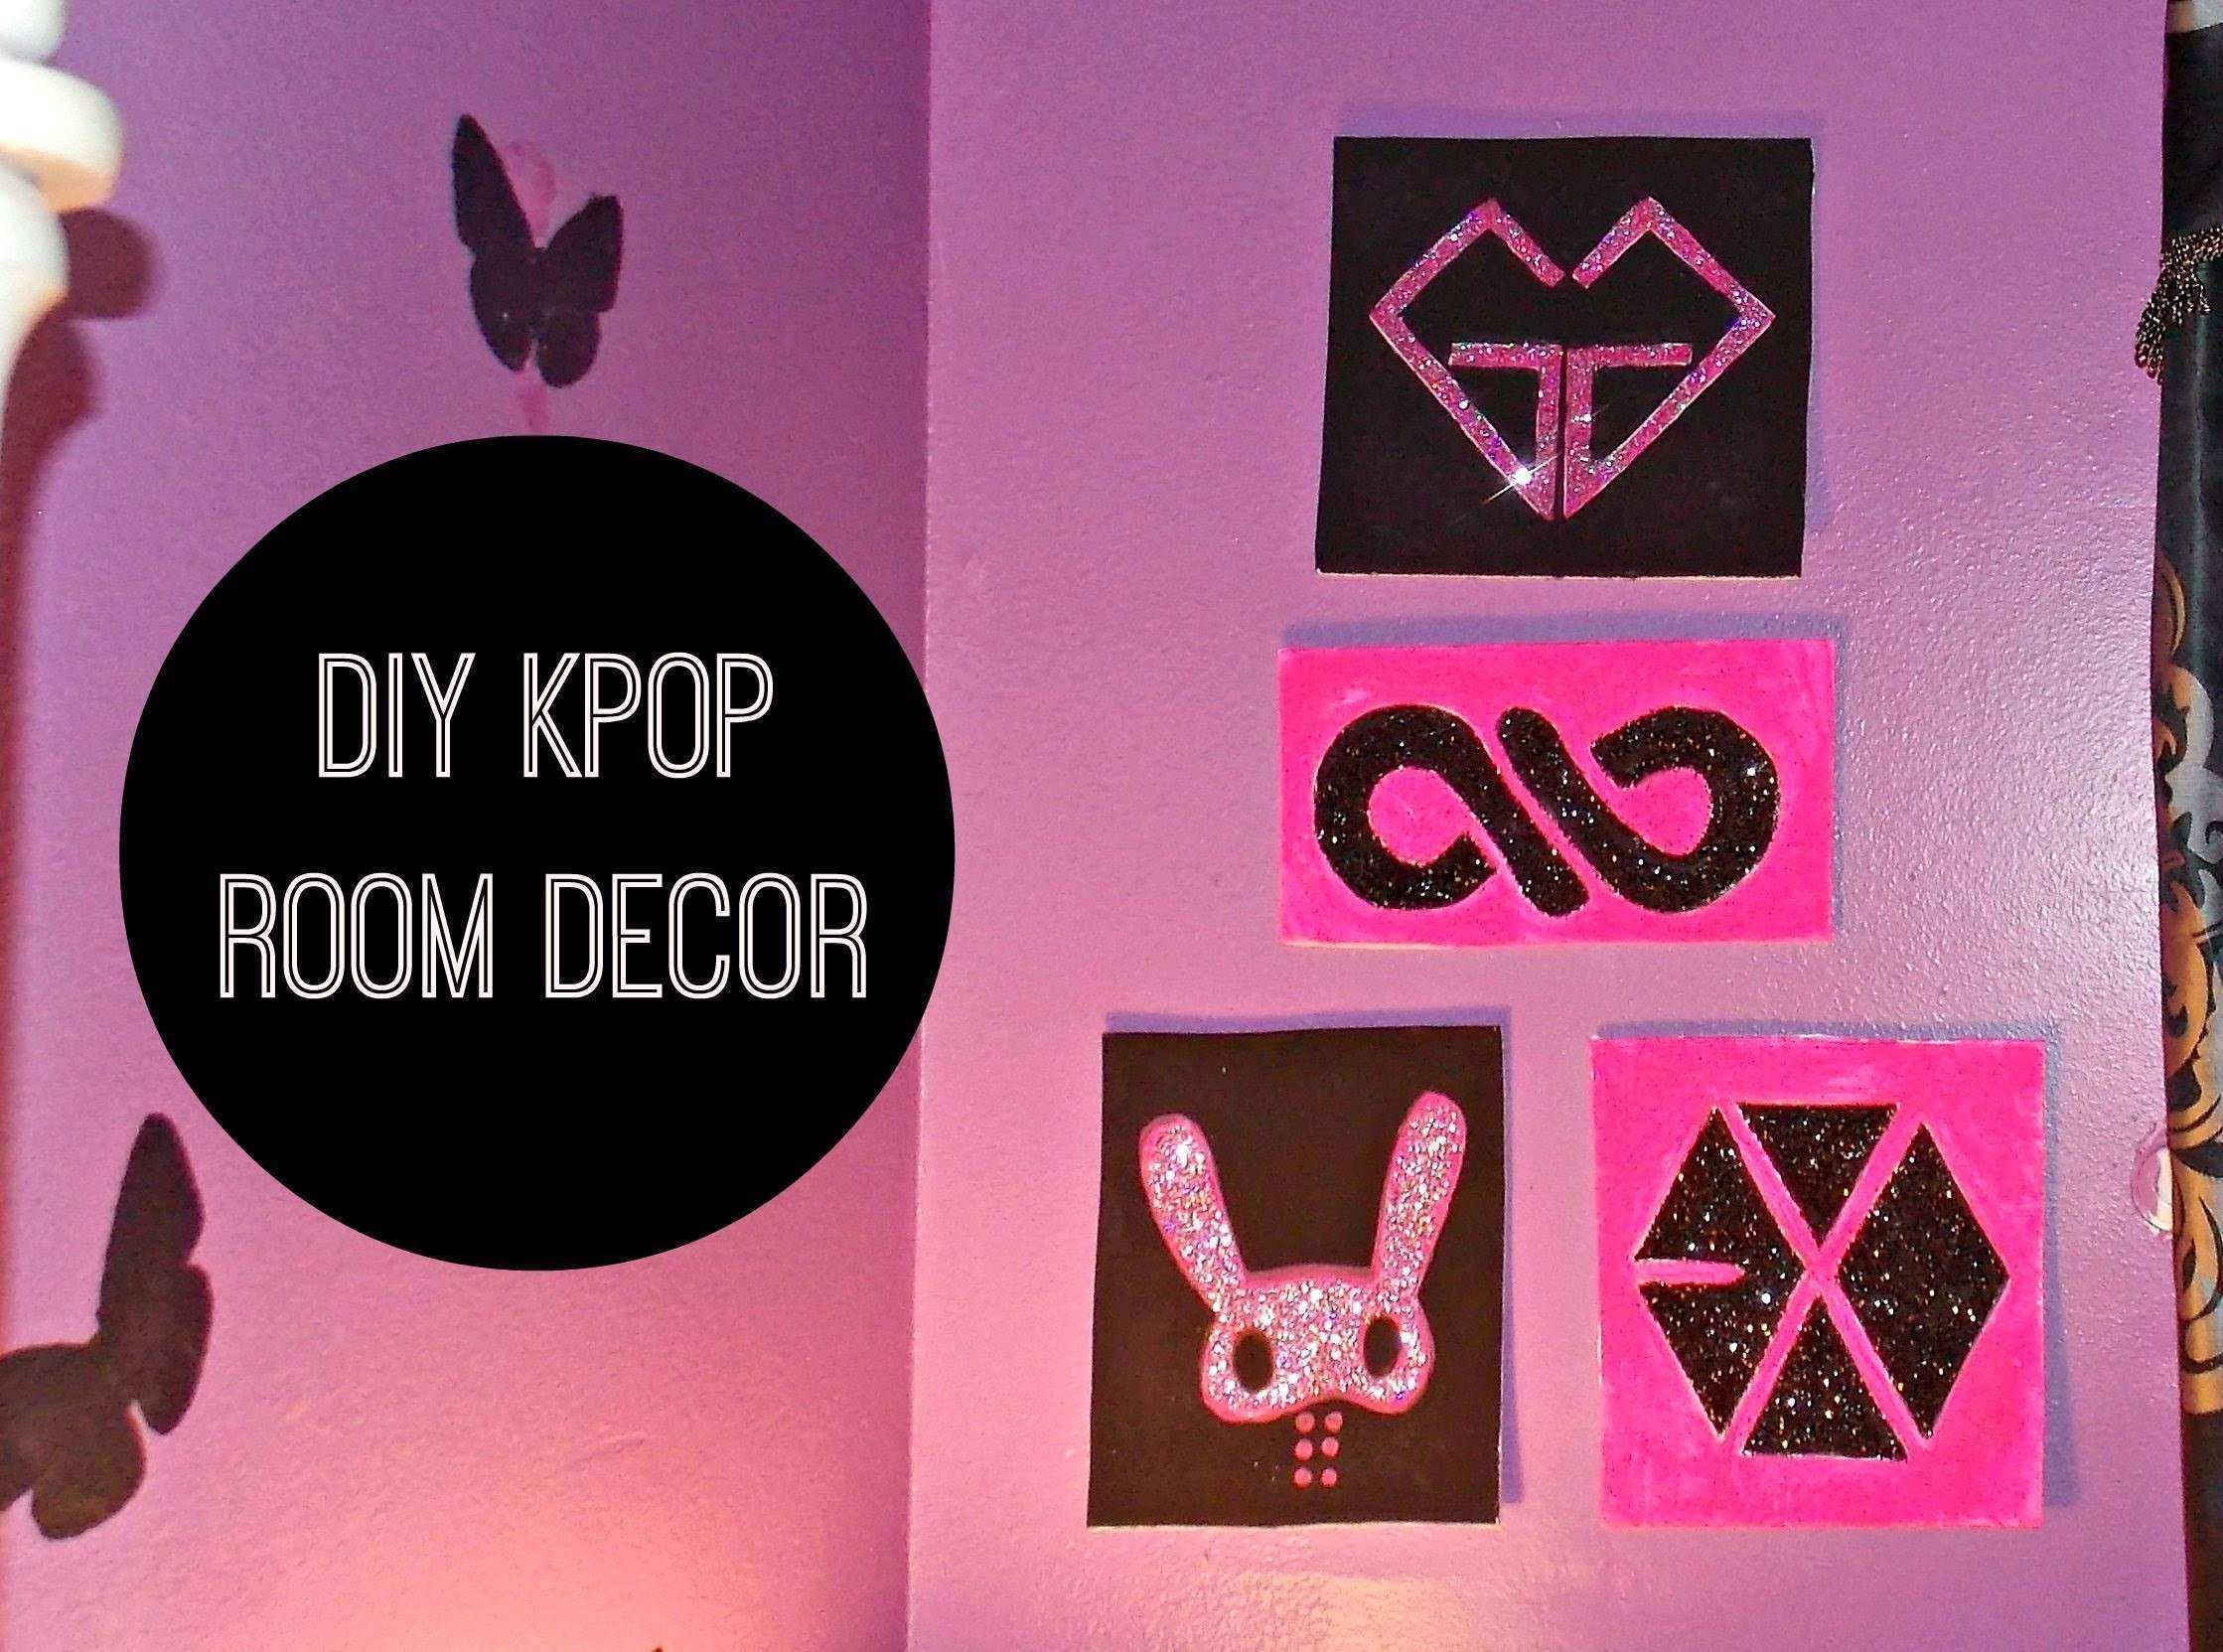 DIY K POP Room Decor Wall Art